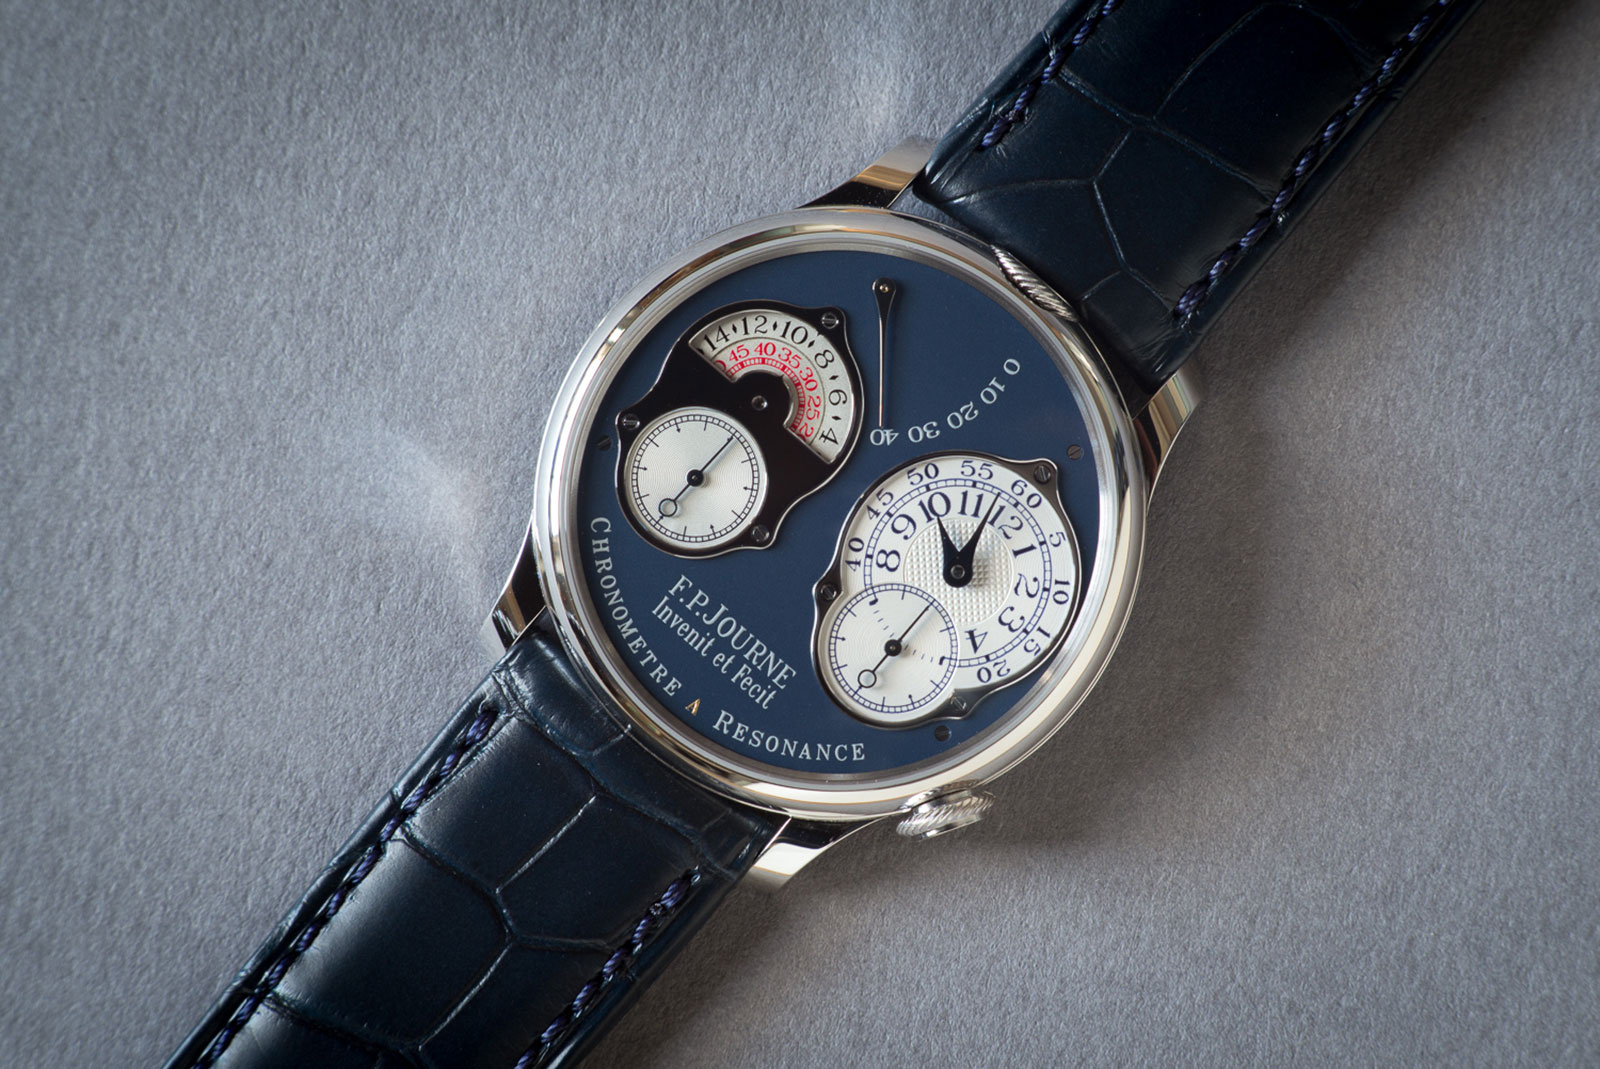 FP Journe Resonance The Armoury Mark Cho 5